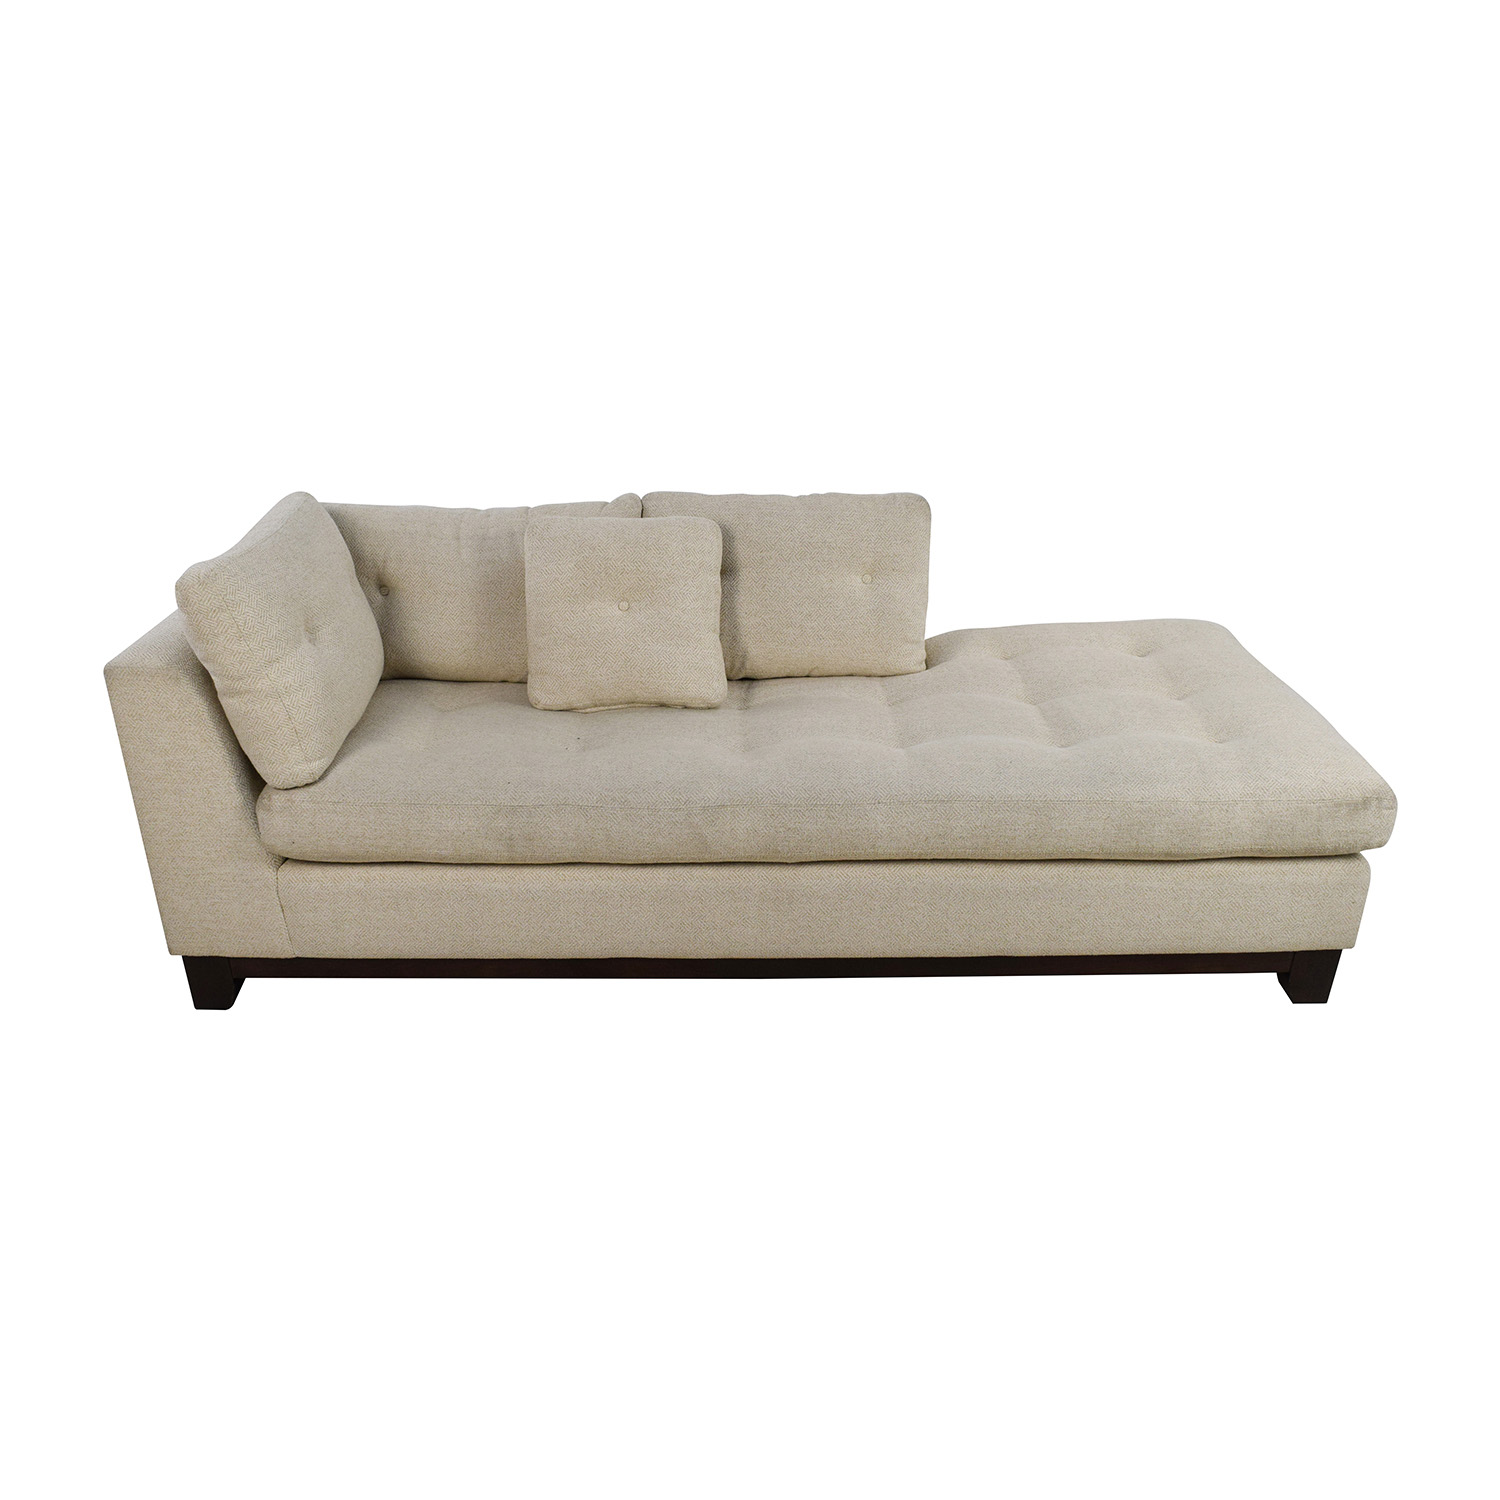 tufted club sofa three seater covers online com chaise lounges ikea thesofa